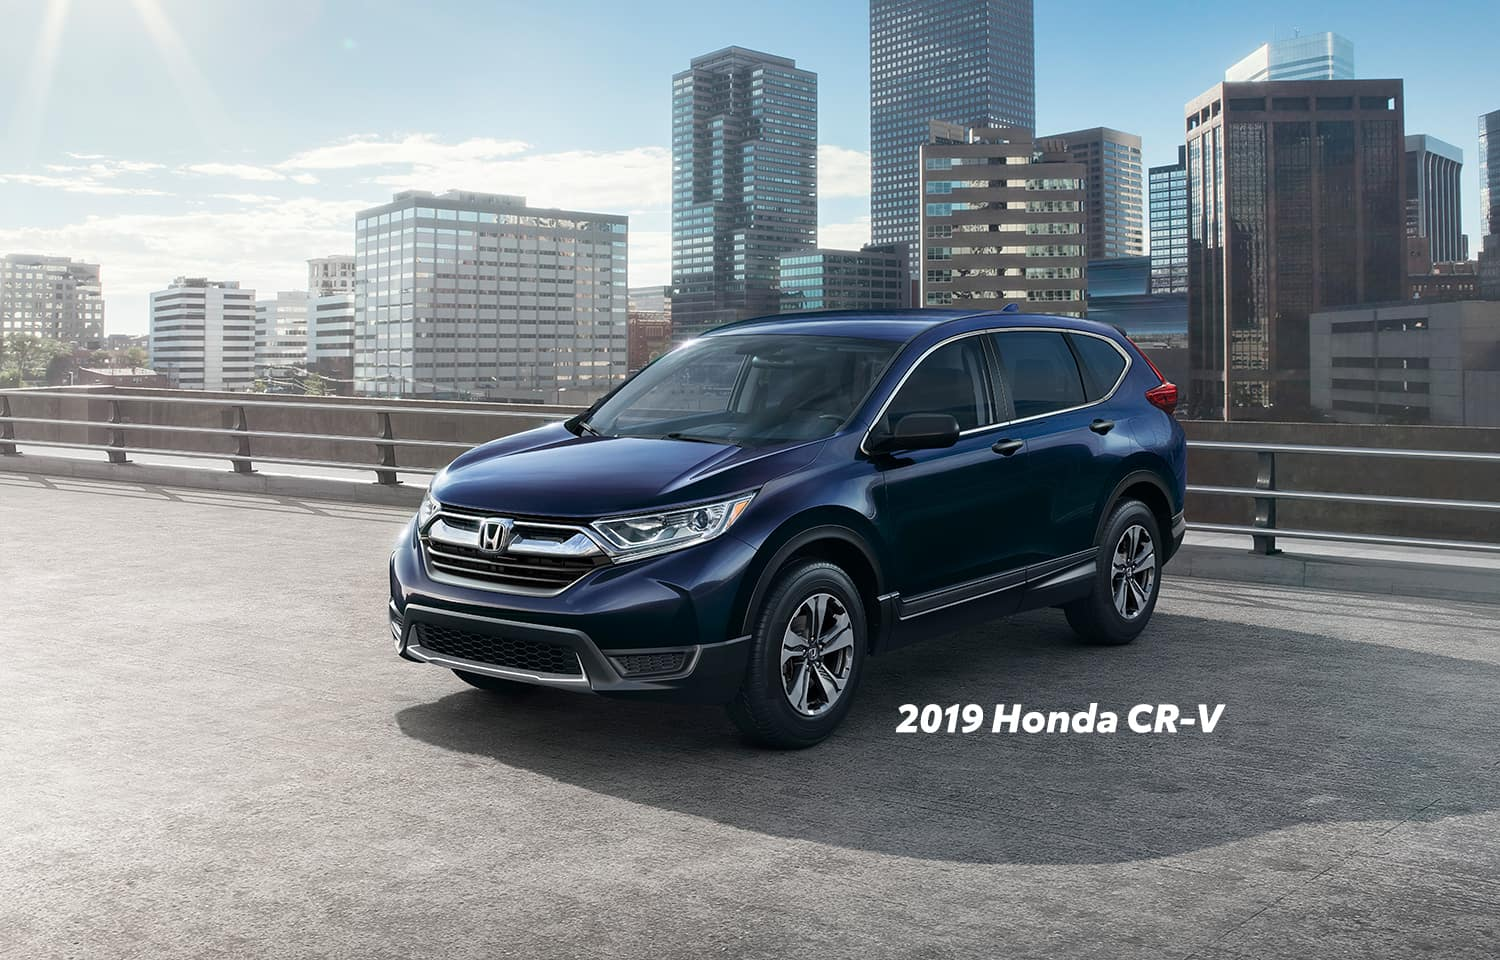 Comparison of the 2019 Pilot versus 2019 CR-V at Boch Honda of Norwood | Midnight blue 2019 Honda CR-V parked in a parking lot